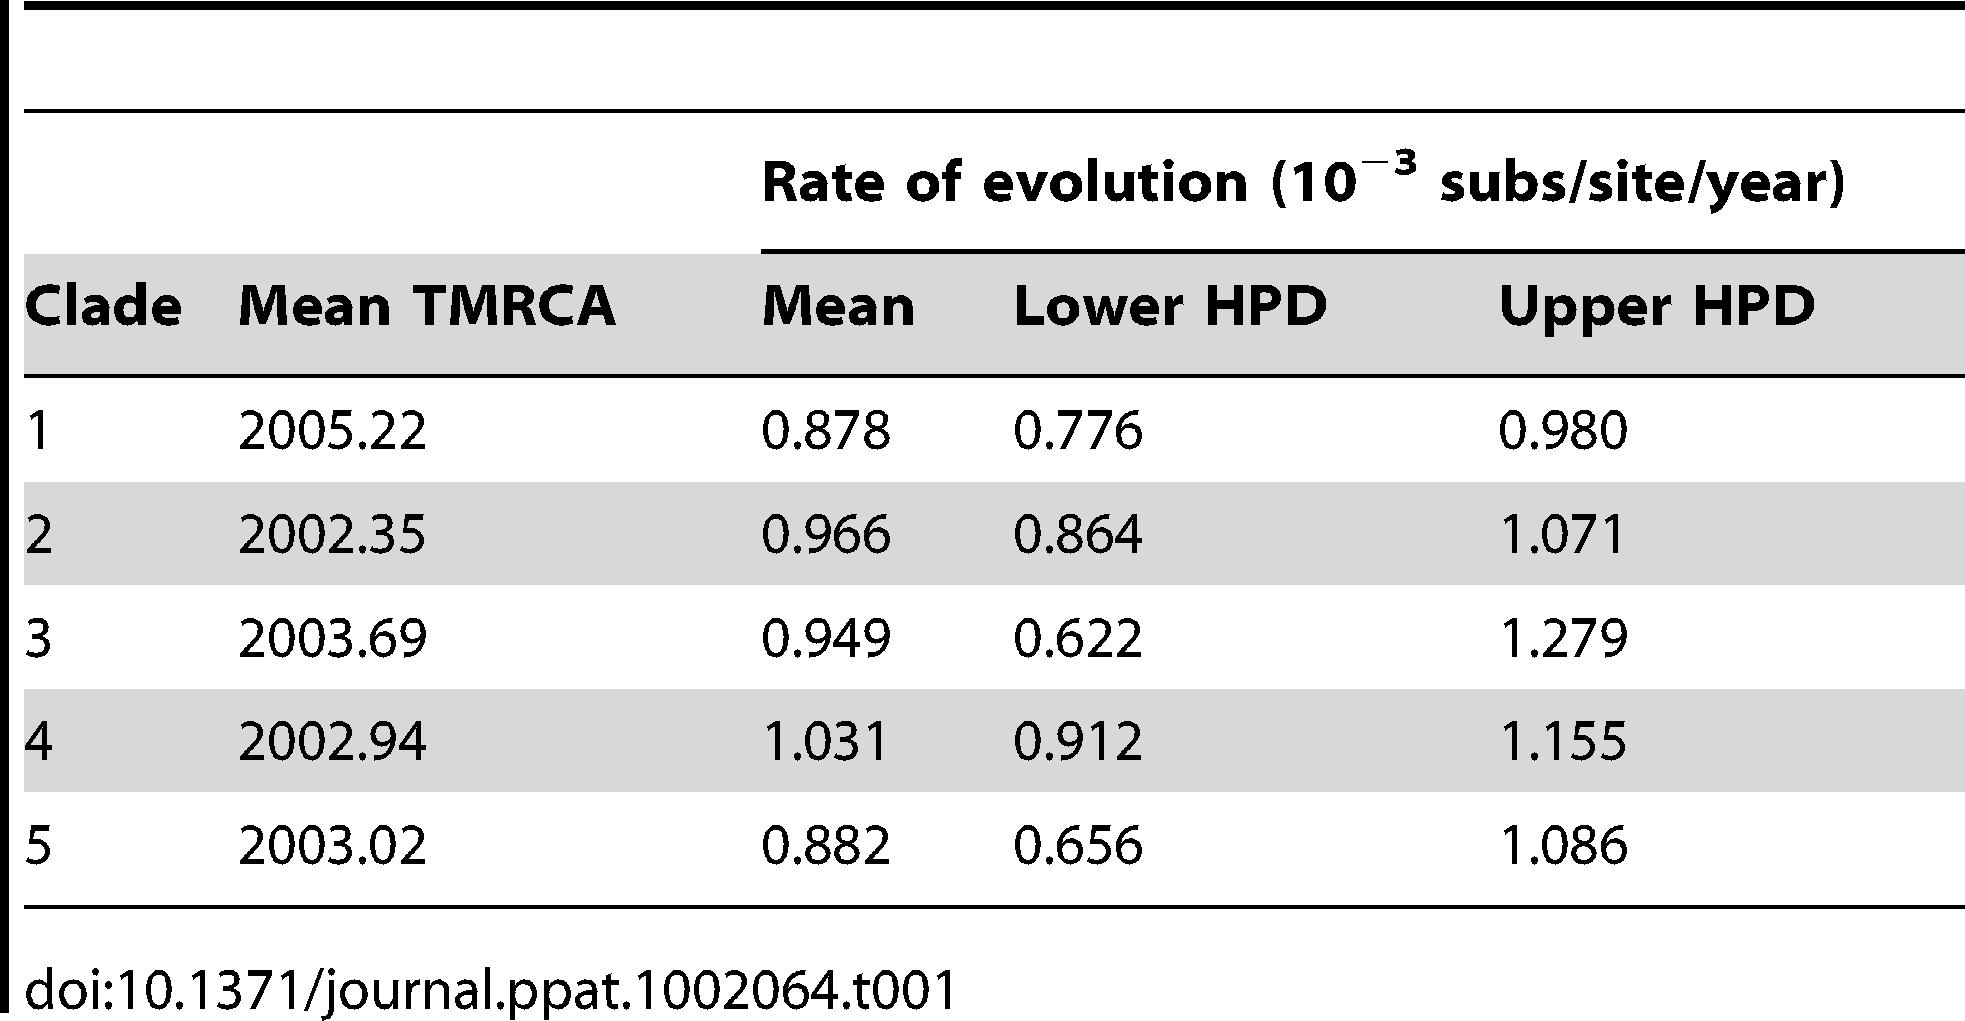 Rate of nucleotide substitution of DENV-1 for each clade in Viet Nam, and the inferred time of the most recent common ancestor (TMRCA).